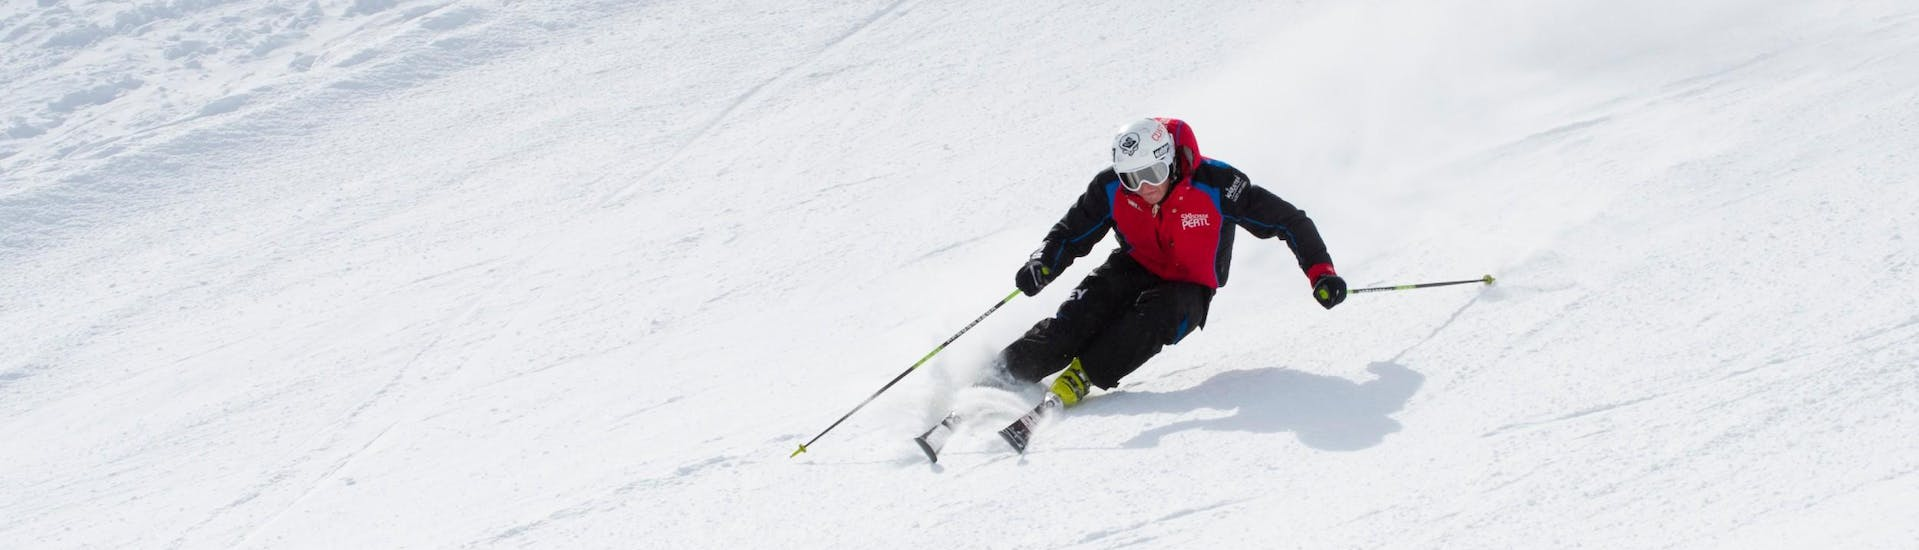 Private Ski Lessons for Adults of All Levels with Skischule Pertl Turracher Höhe - Hero image